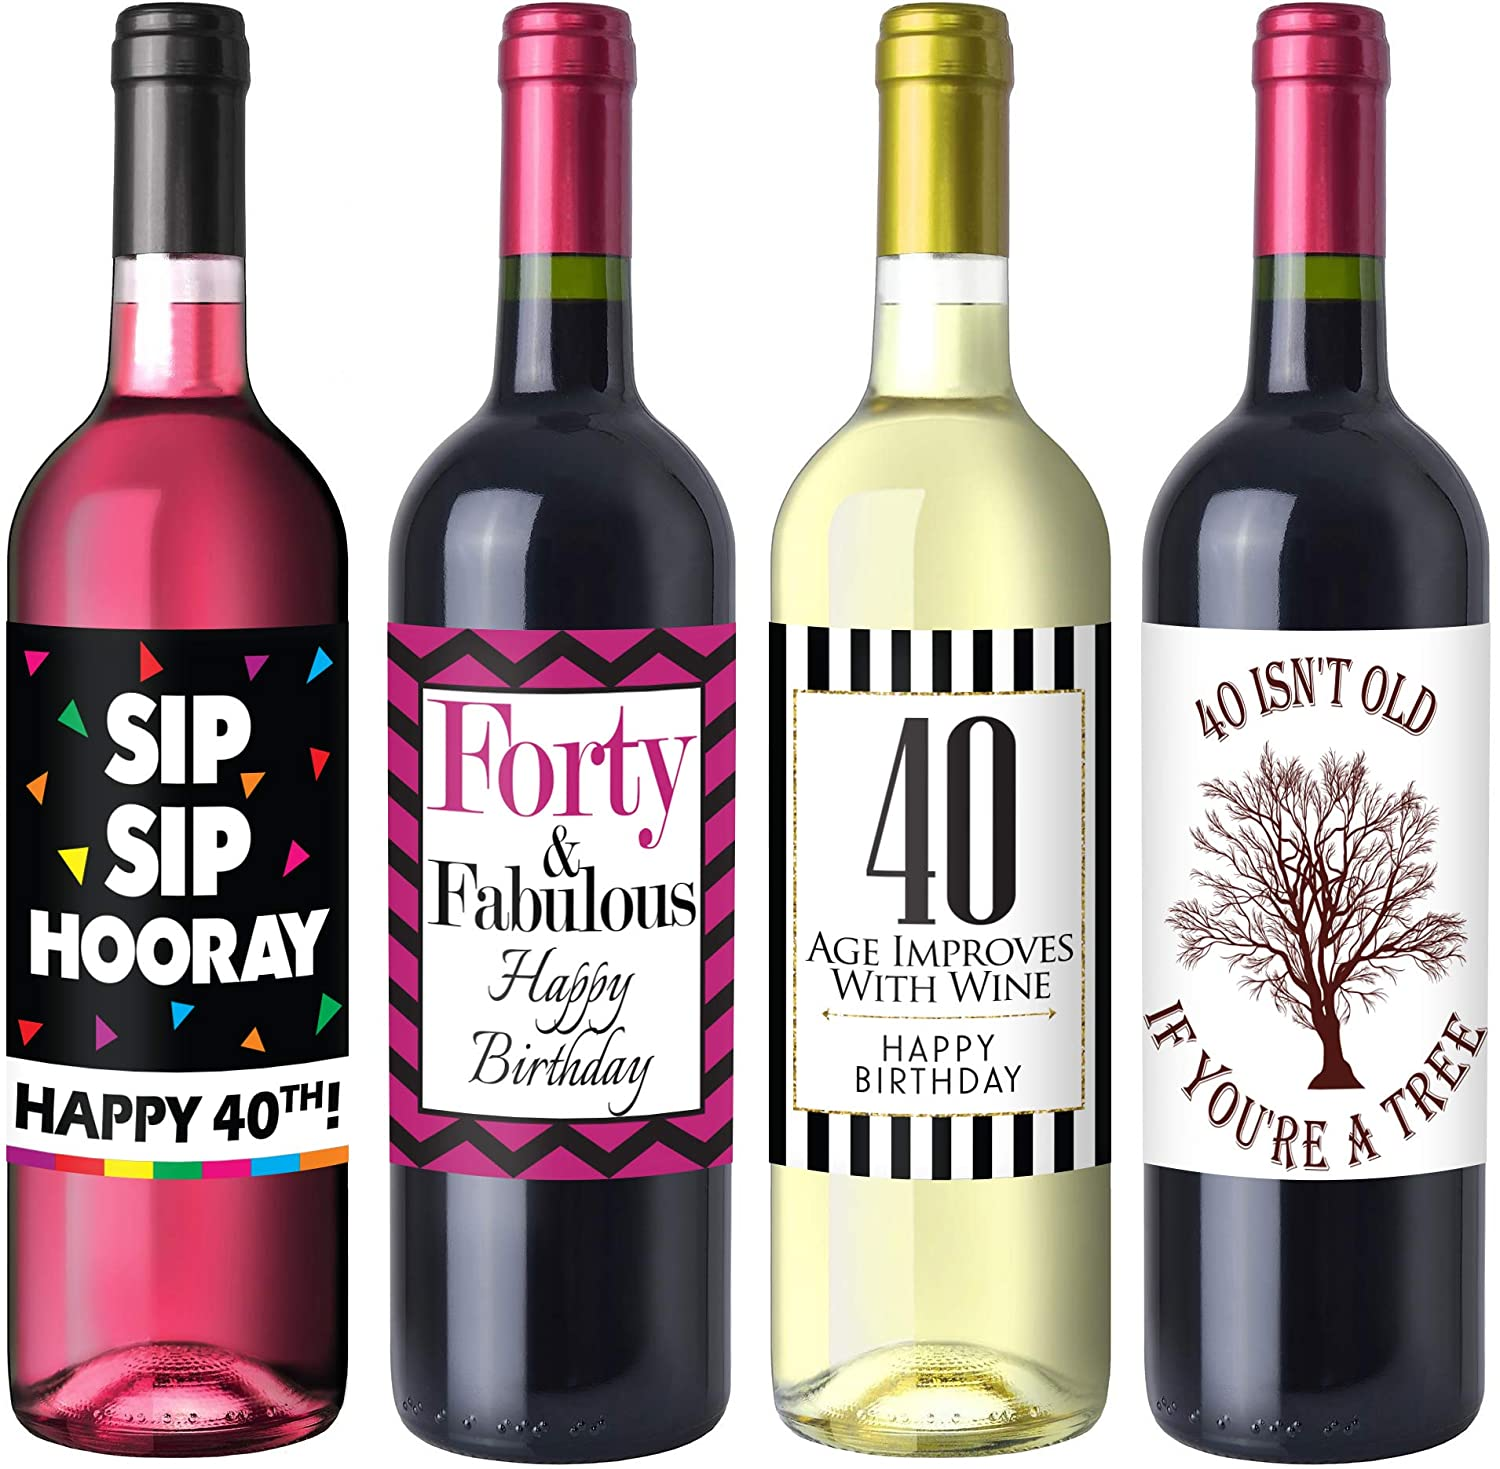 Chic 40th Birthday Wine Label Pack Birthday Party Supplies Ideas And Decorations Funny Birthday Gifts For Women